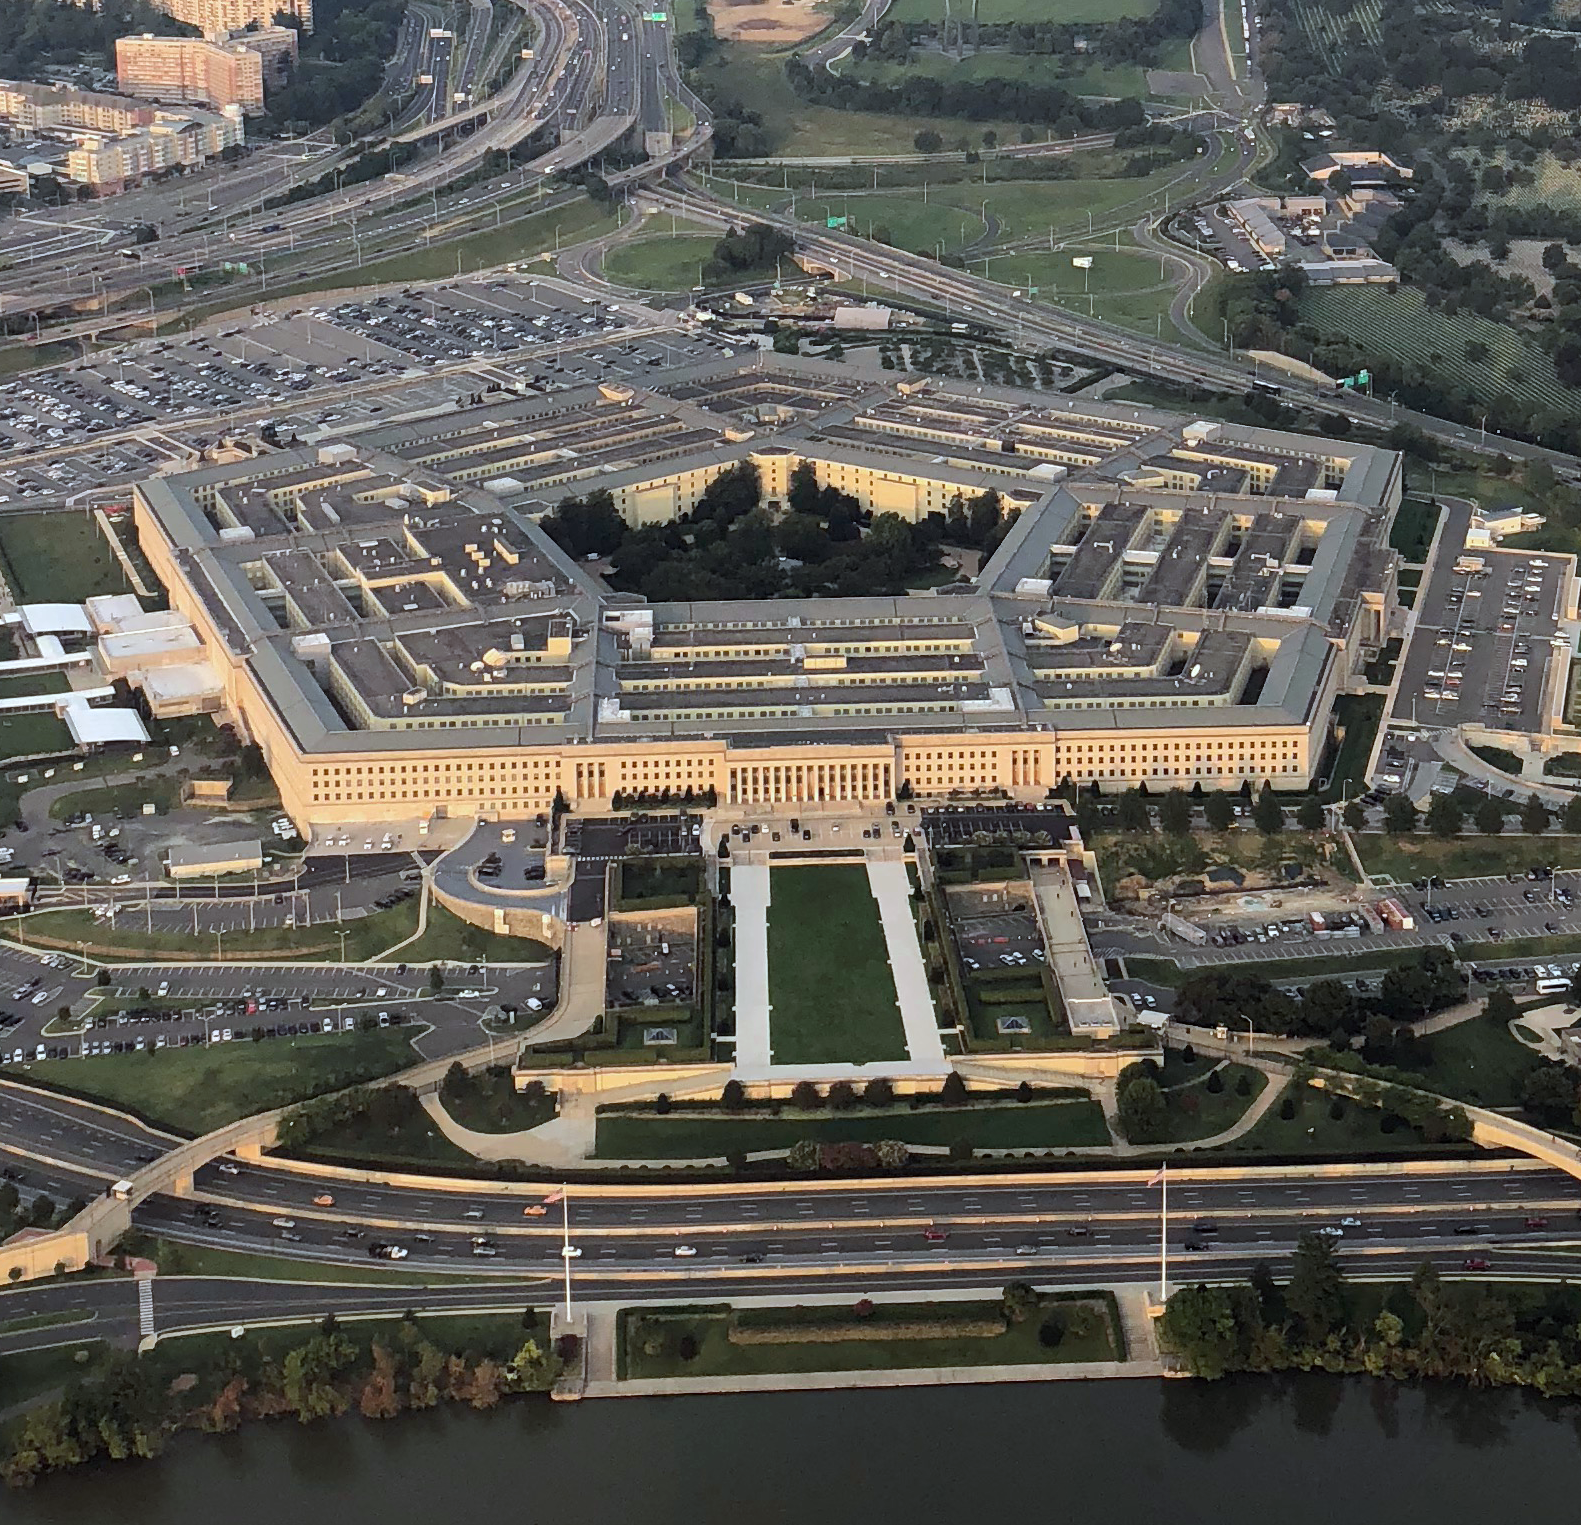 The Pentagon - Wikipedia